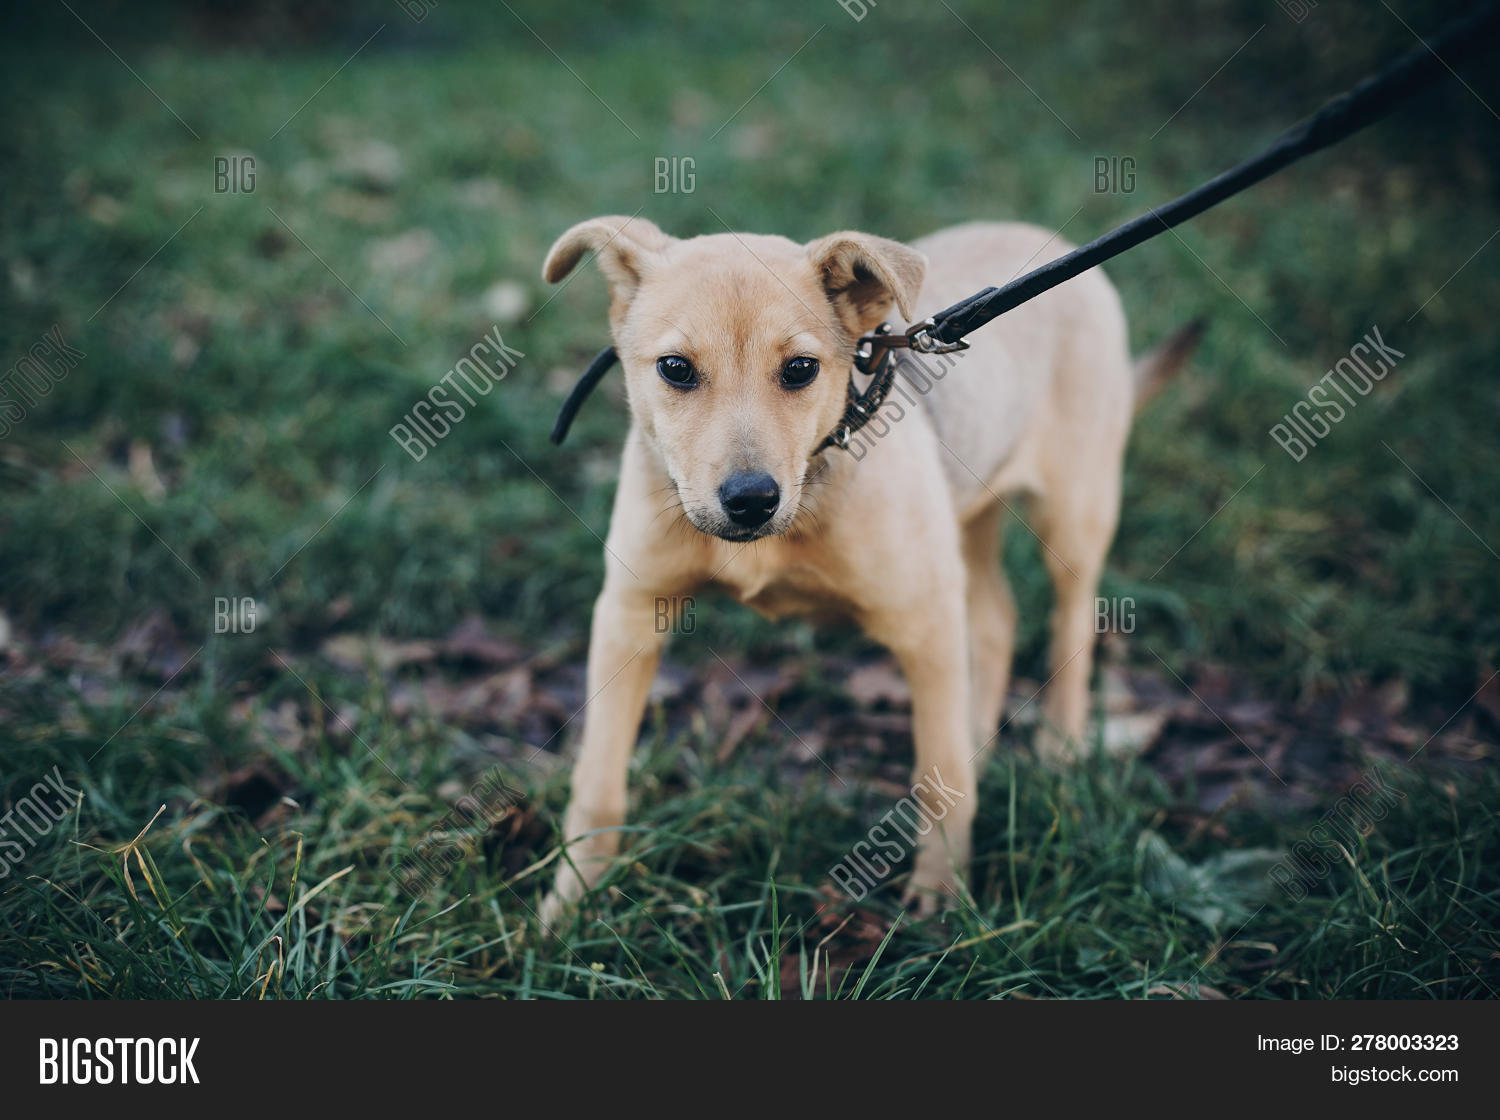 Cute Golden Puppy Image & Photo (Free Trial) | Bigstock